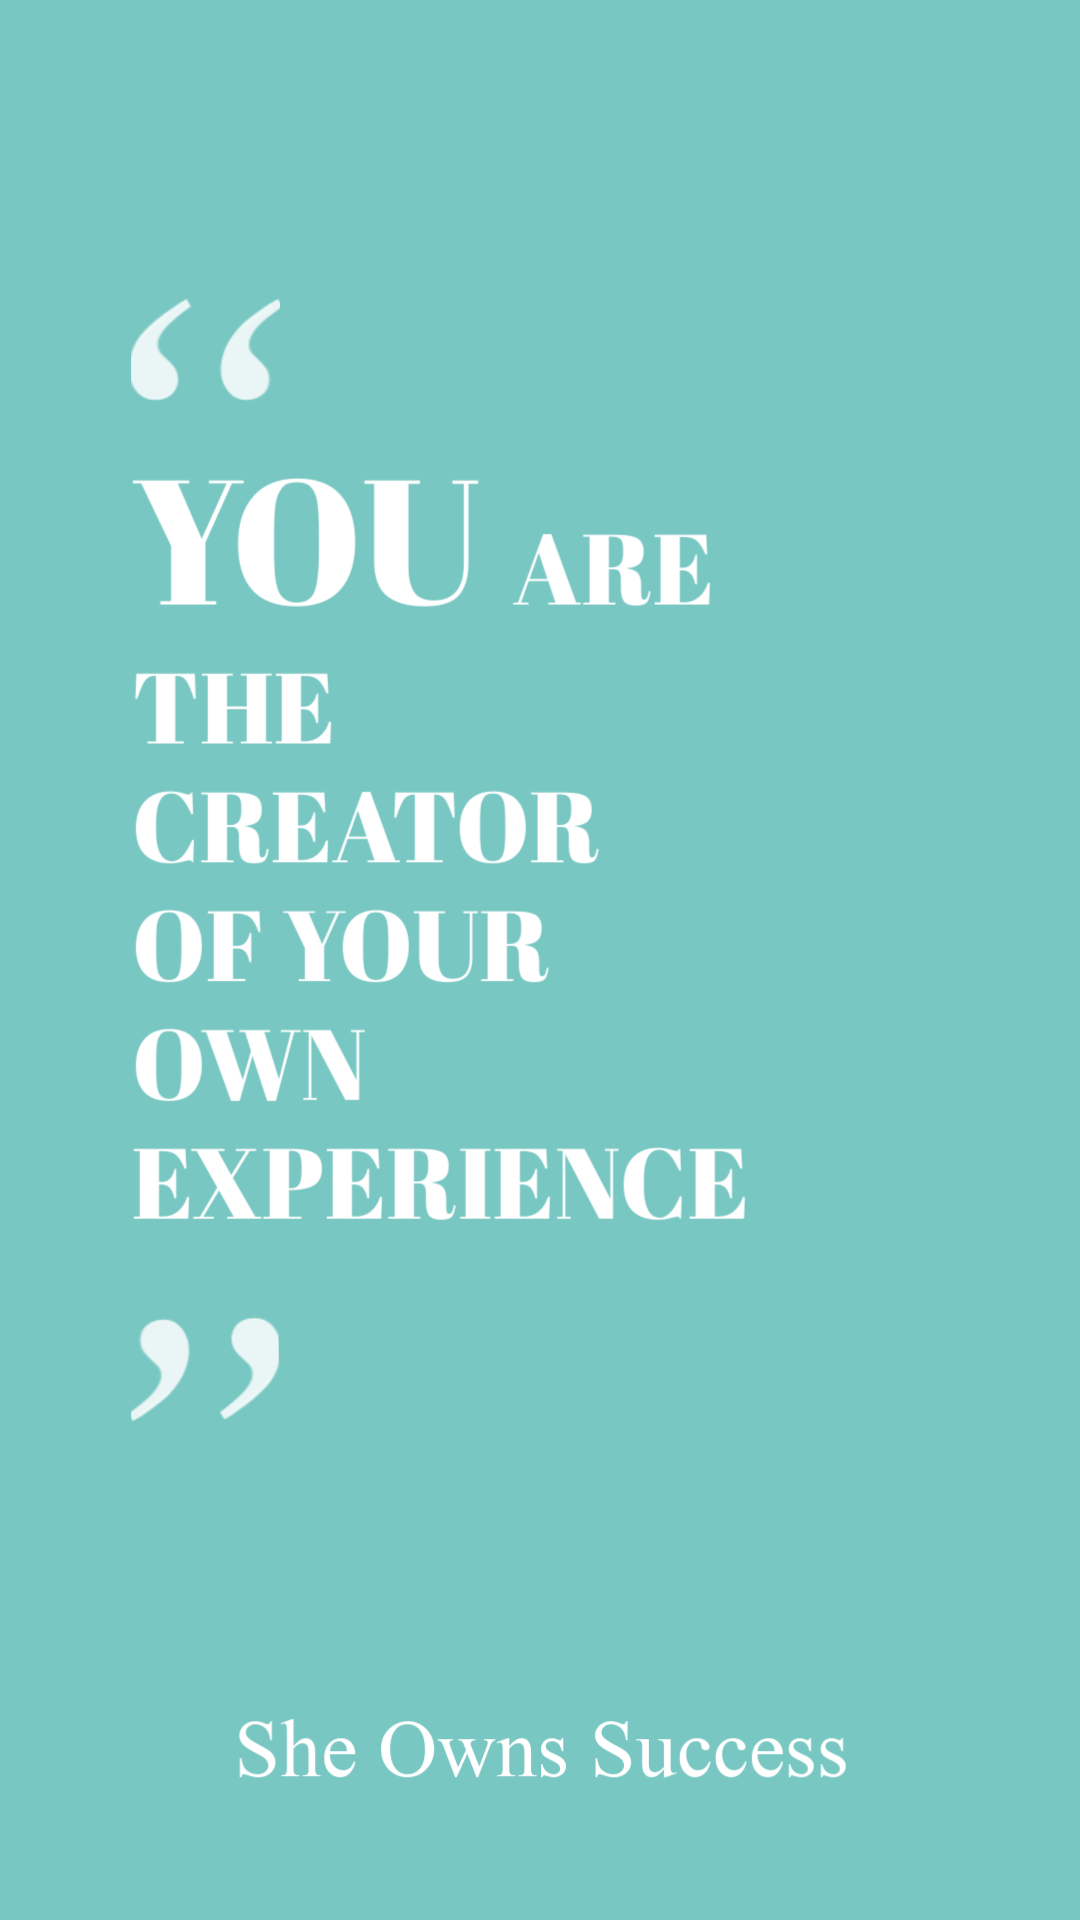 You Can Achieve Anything You Want When You Believe That You Are The Creator Of Your Own Life Experiences Life Experience Quotes Experience Quotes Career Quotes